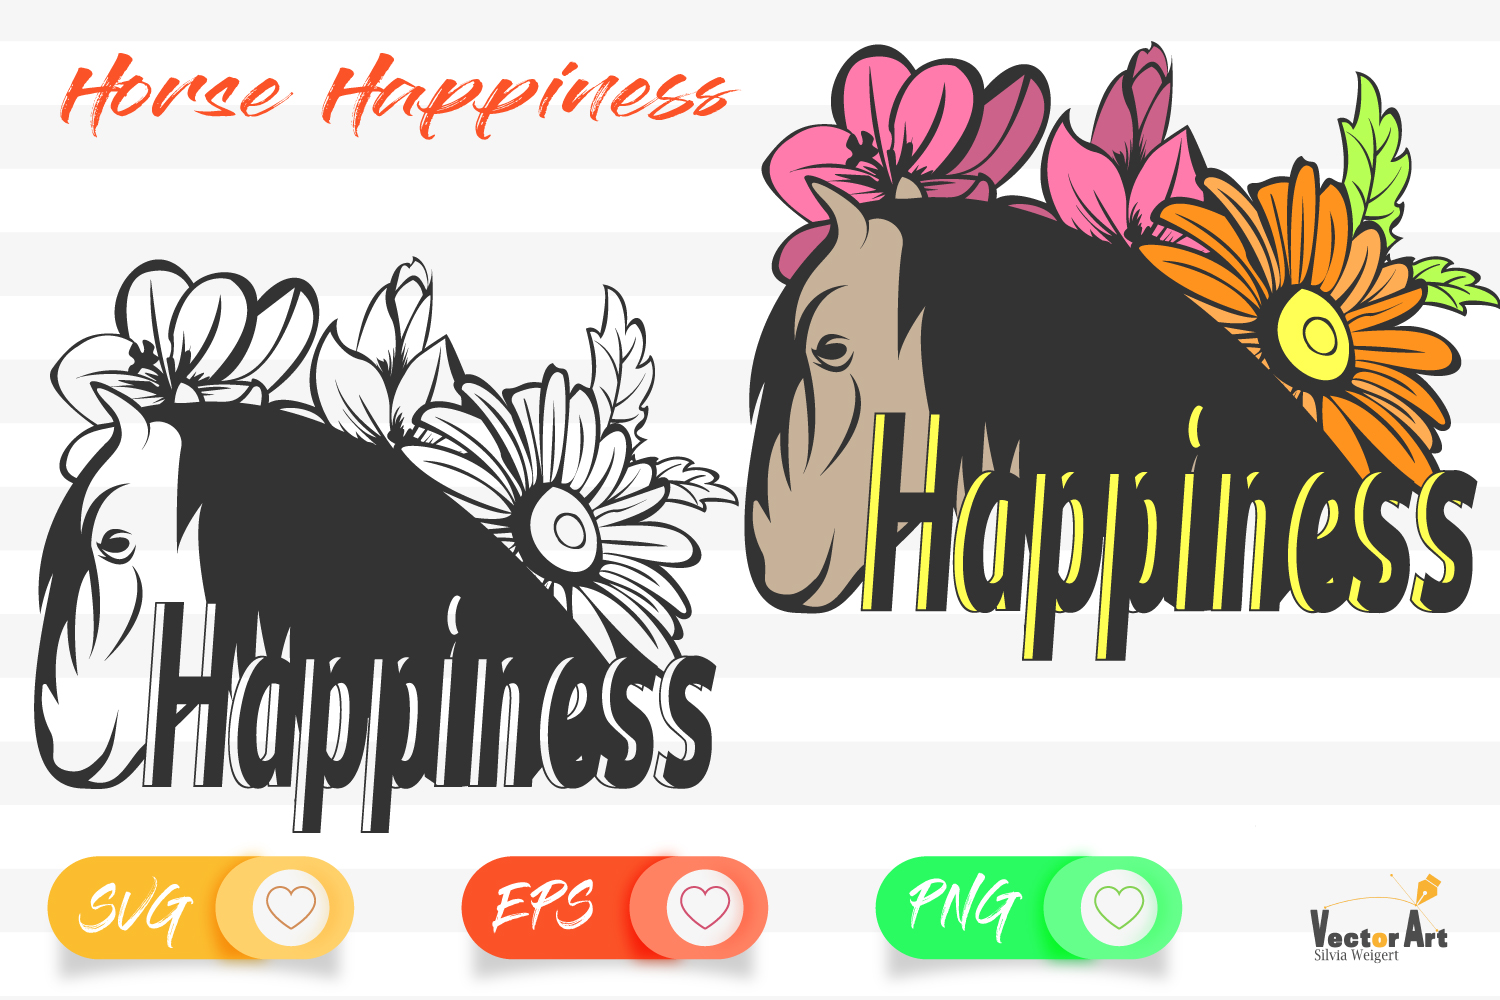 Horse Happiness - Cut File 2 Versions example image 1